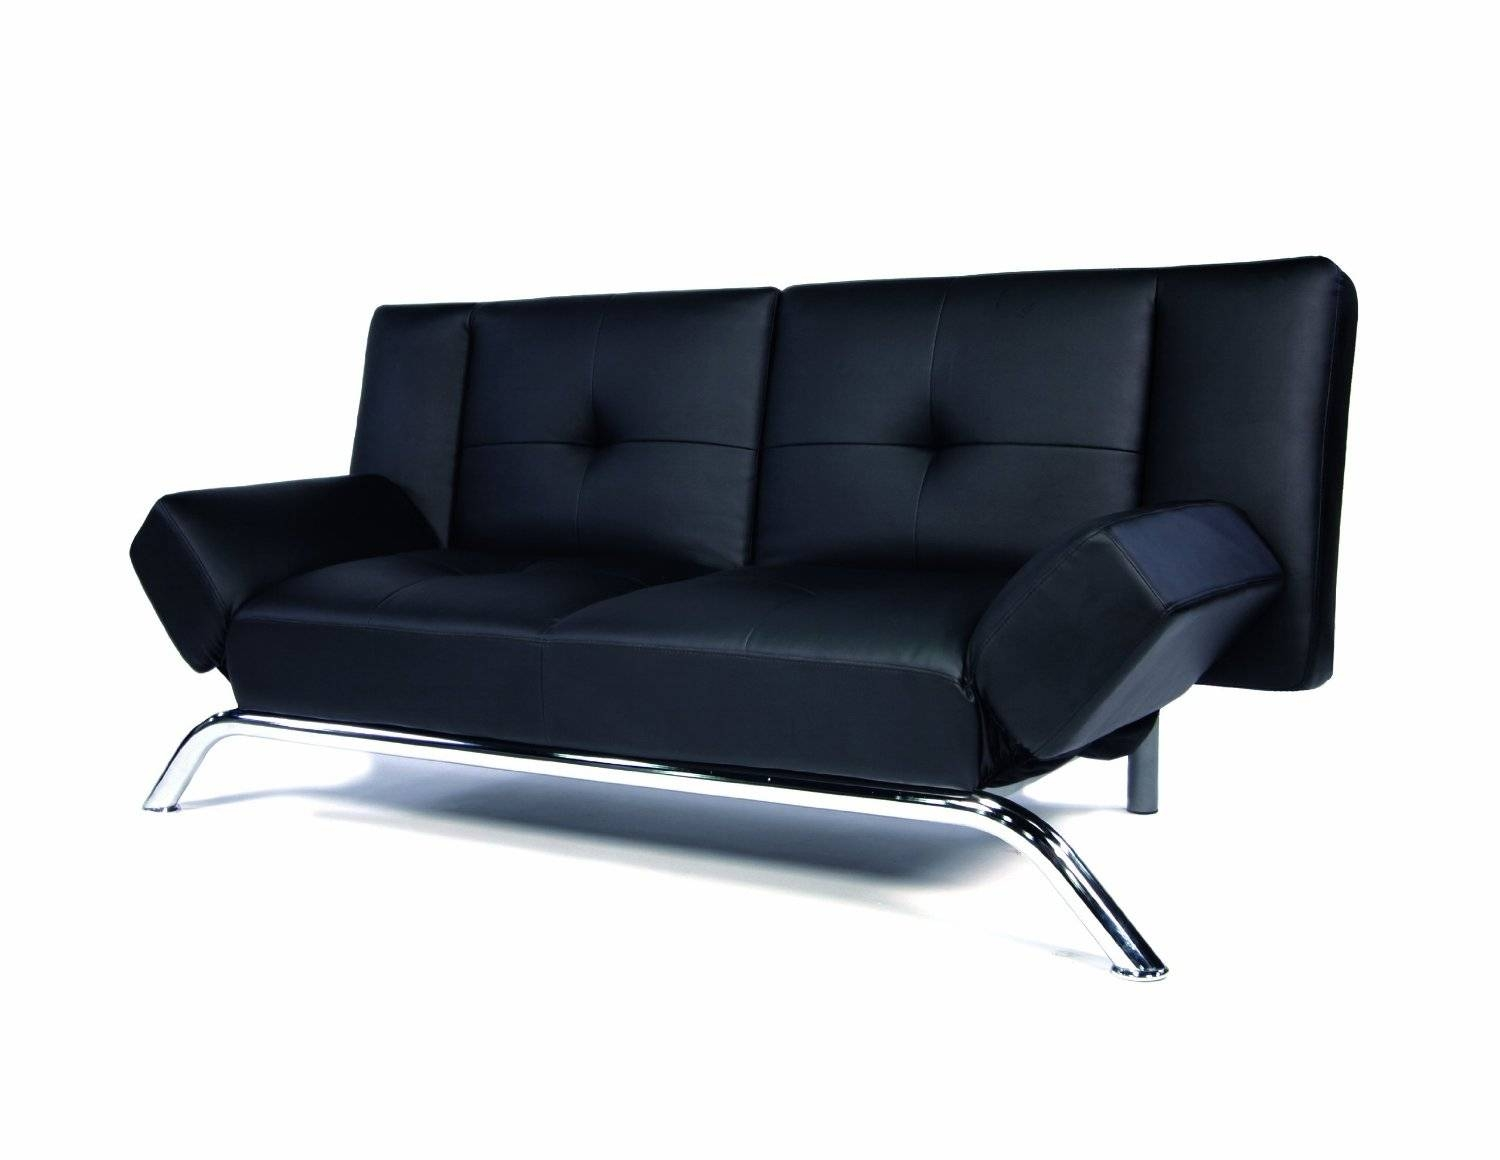 Leather Convertible Sofa with Black Leather Convertible Sofas (Image 10 of 15)